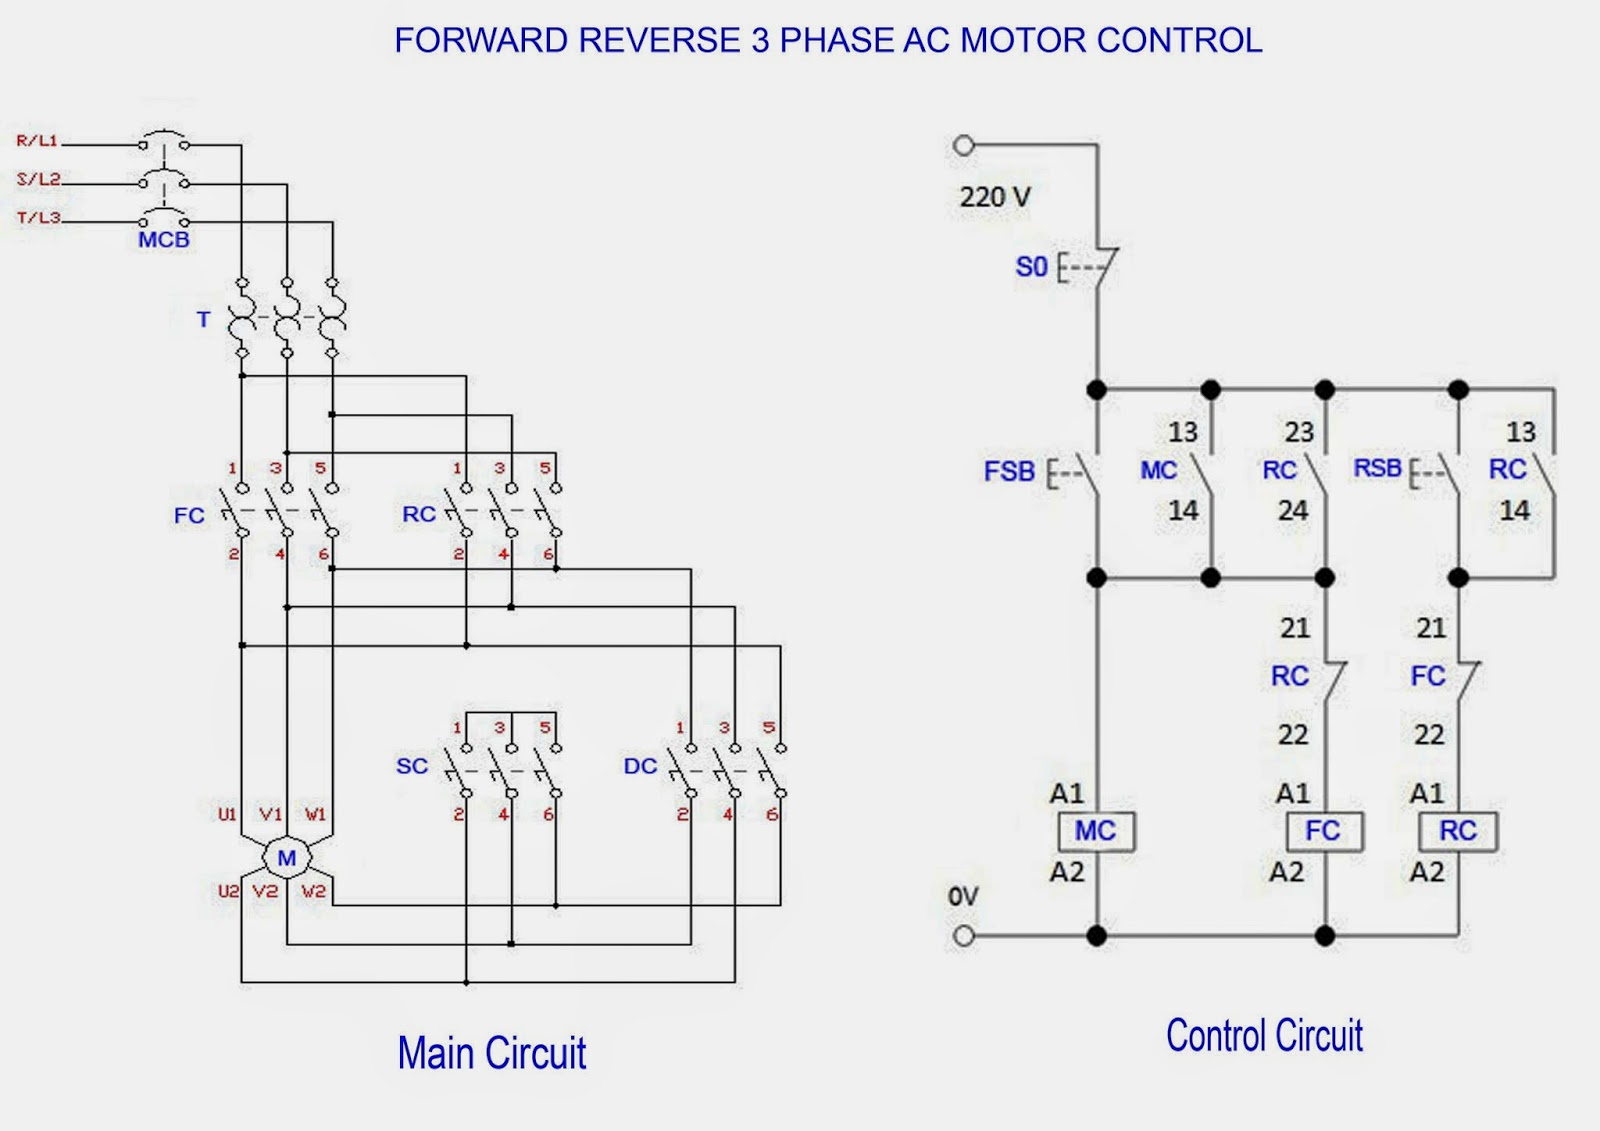 3 Phase Motor Wiring Diagram 9 Leads likewise Wiring Diagram For 9 Lead Motor Inspirationa 3 Phase Motor Wiring Diagram 9 Leads Fresh Wiring Diagram 18 also Star Delta Or Wye Delta Motor Wiring 20 besides Wiring Diagram 12 Lead Motor additionally Stator Winding Design Considerations Electric Motors. on 9 lead 3 phase motor wiring diagram